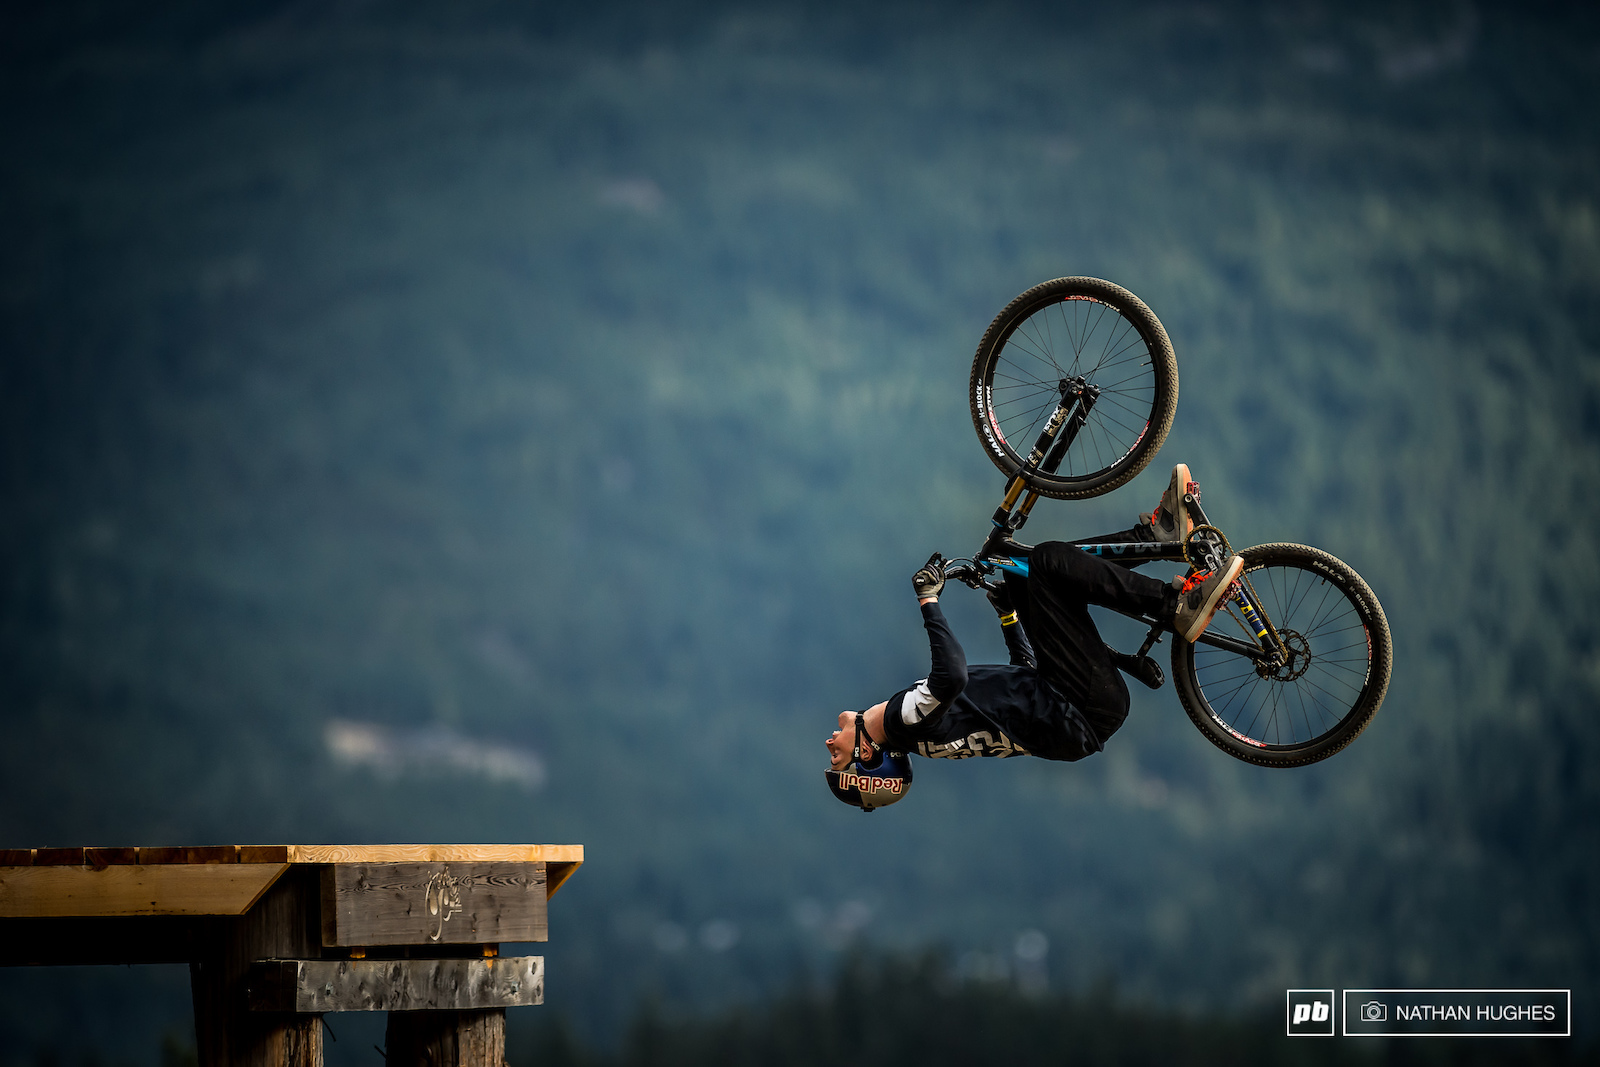 It seemed Matt Jones had some fresh tactics up his sleeve here in Whistler after crashing out of the contests in both Les Gets and Innsbruck... this time he would go a little steadier on run 1 and put a solid score on the board.